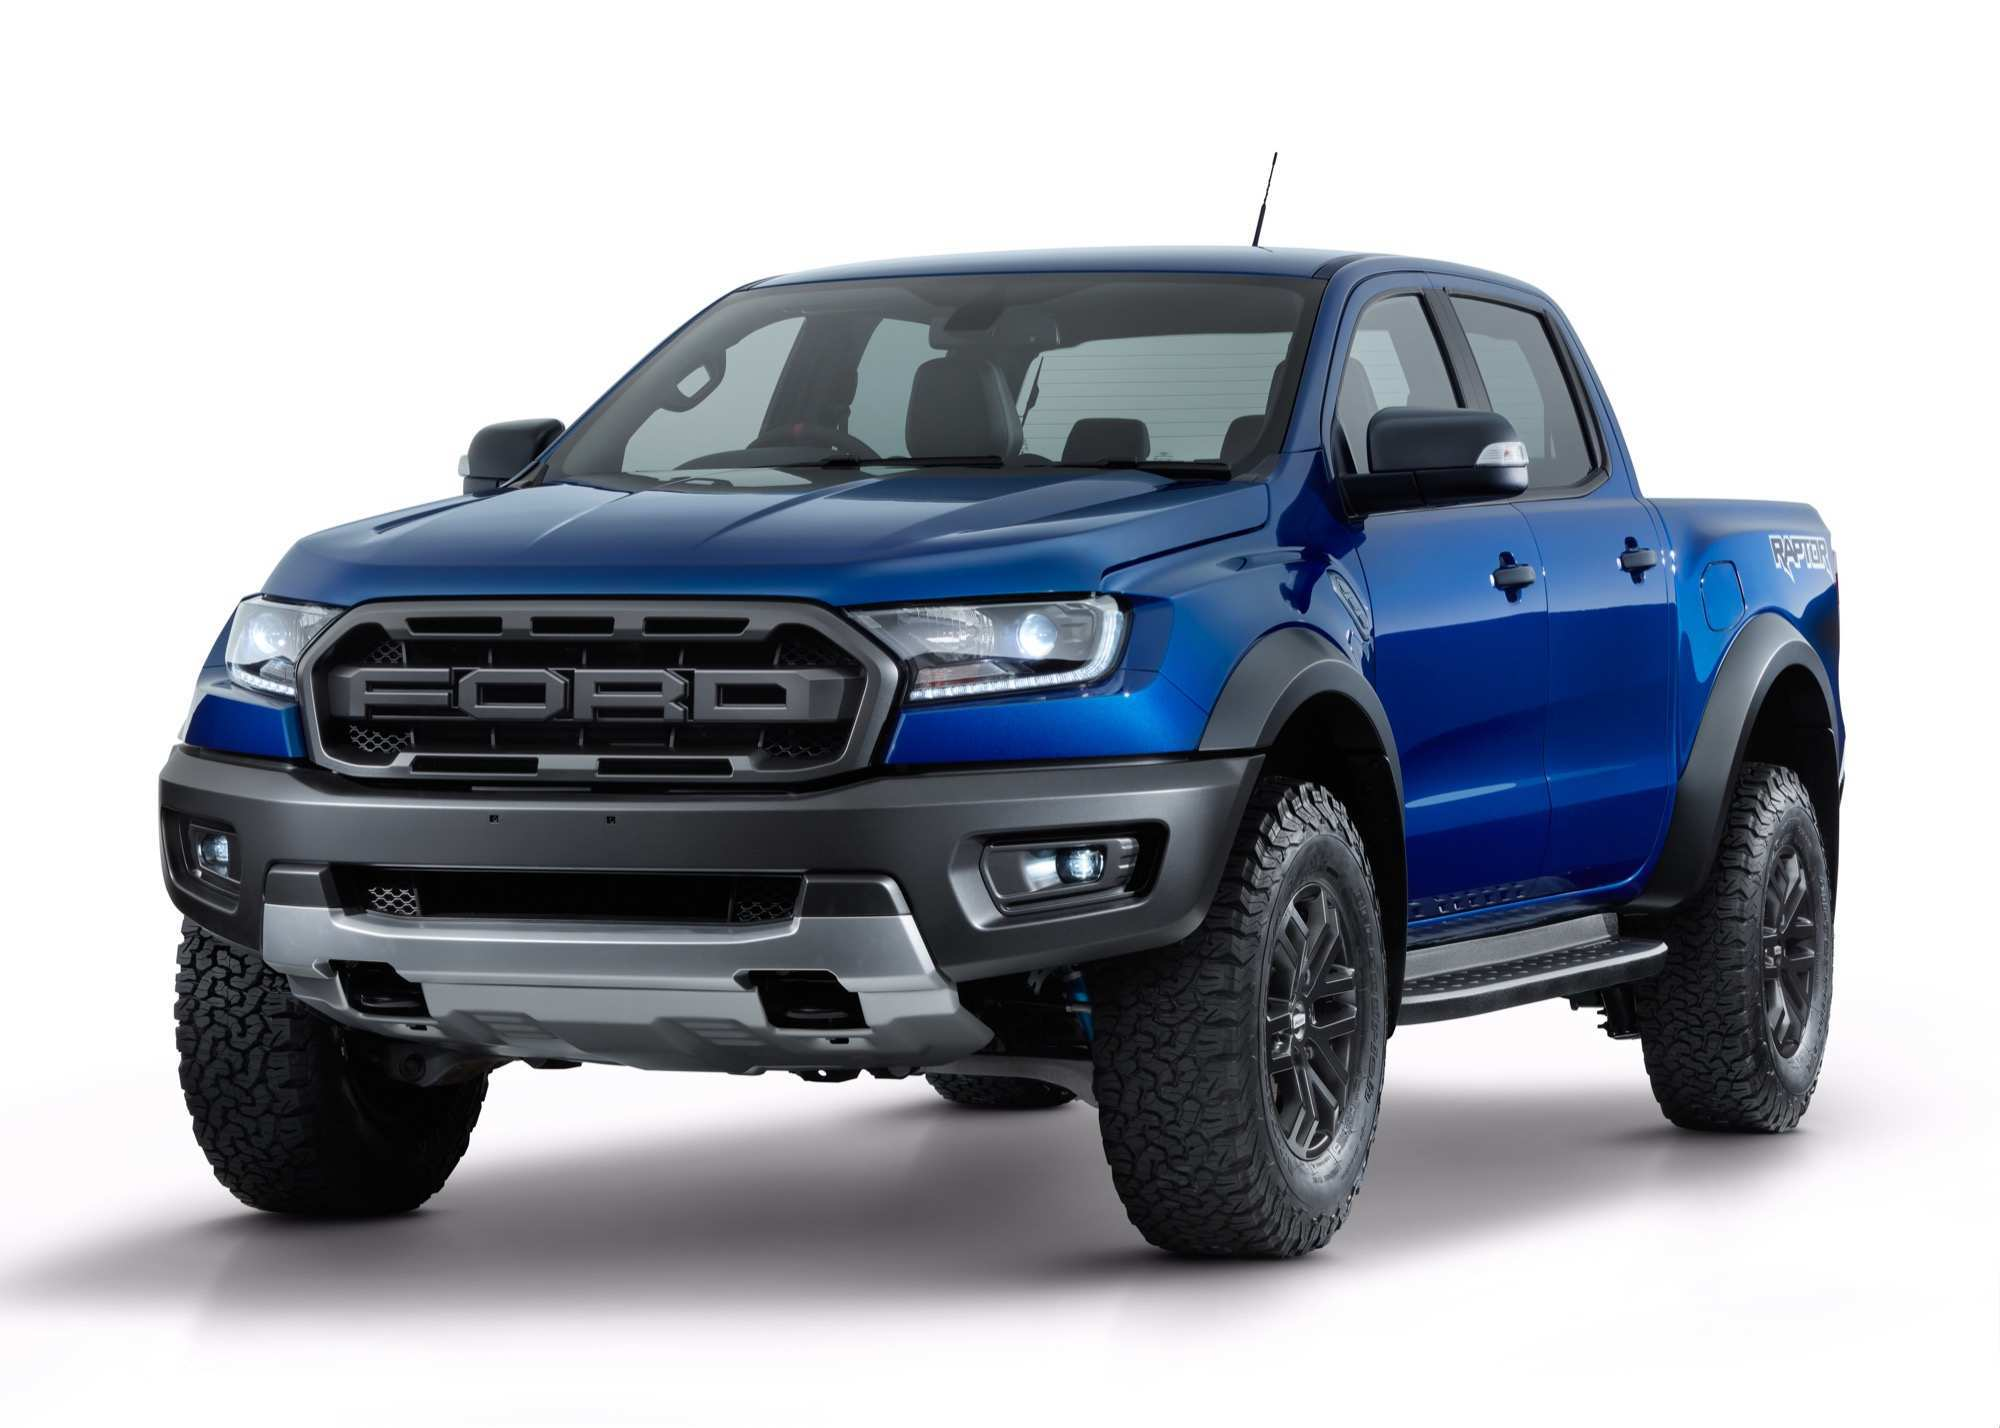 73 All New 2019 Ford Ranger Usa Specs Release